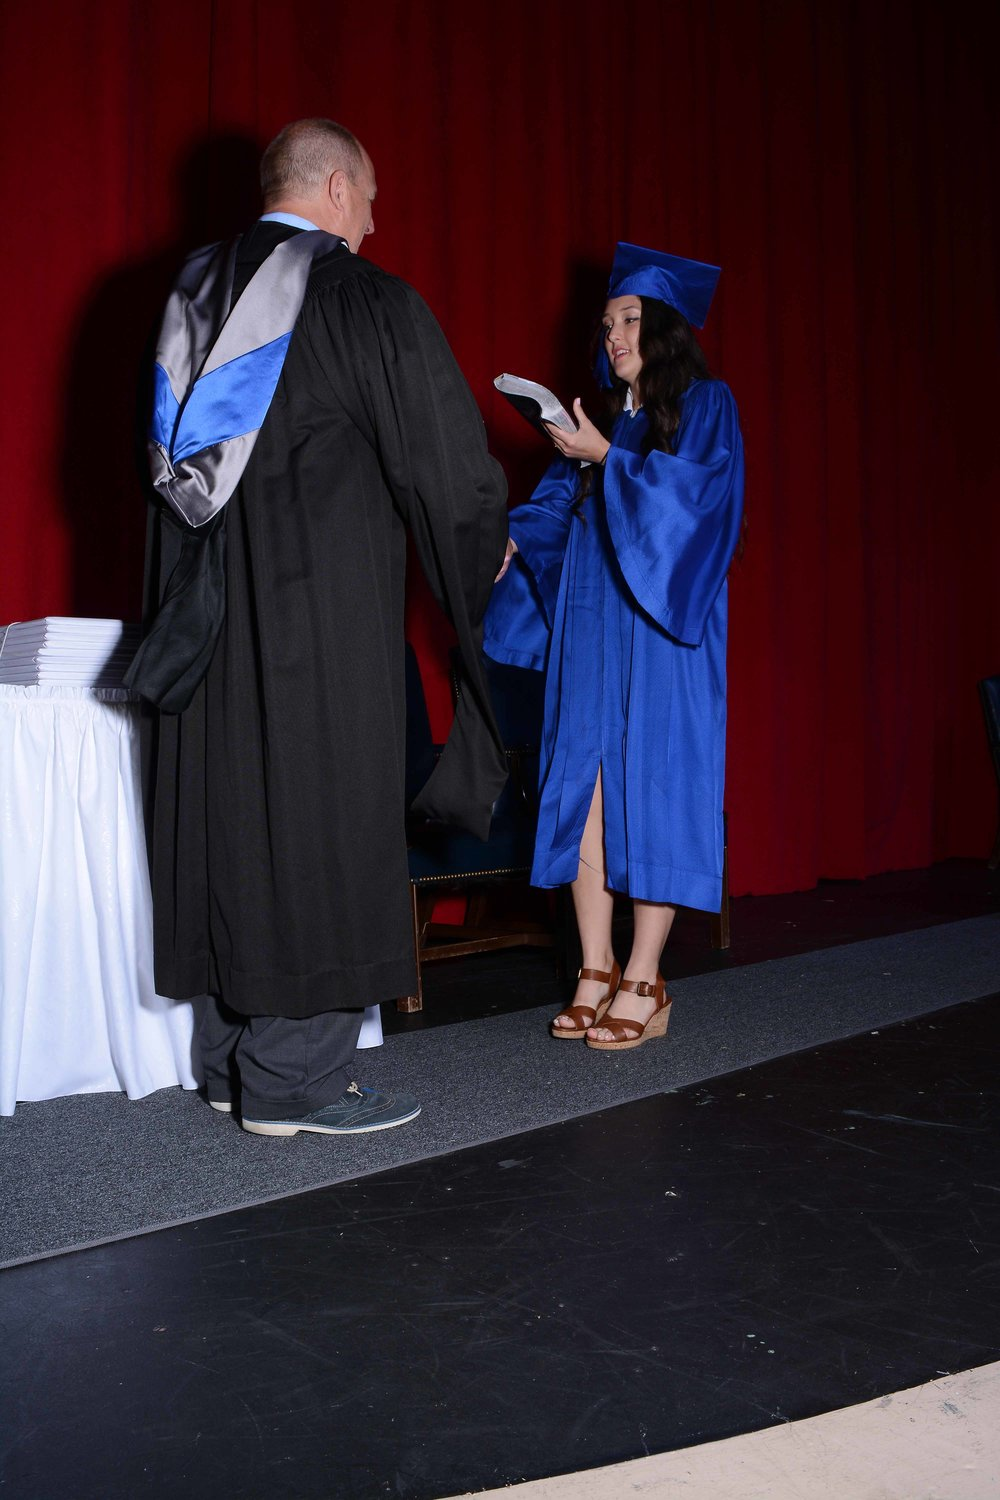 May14 Commencement23.jpg